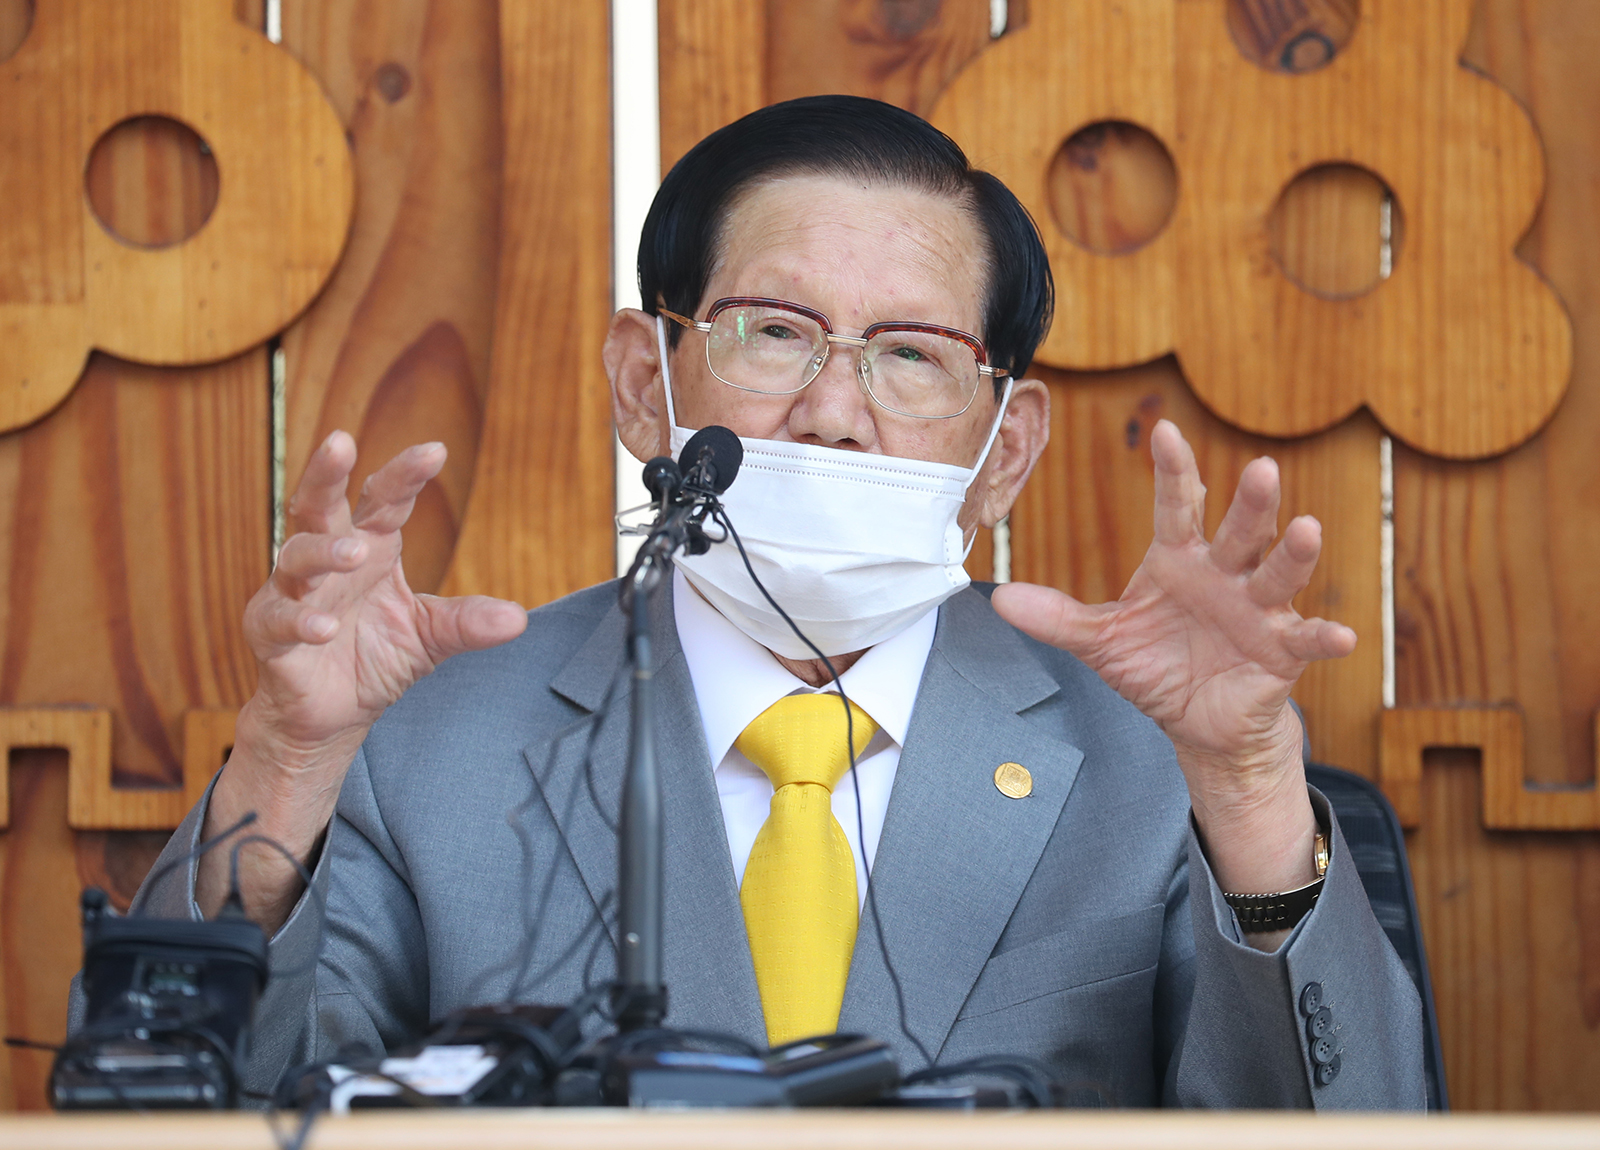 Lee Man-hee, leader of the Shincheonji Church of Jesus, speaks during a press conference at a facility of the church in Gapyeong, South Korea on March 2.